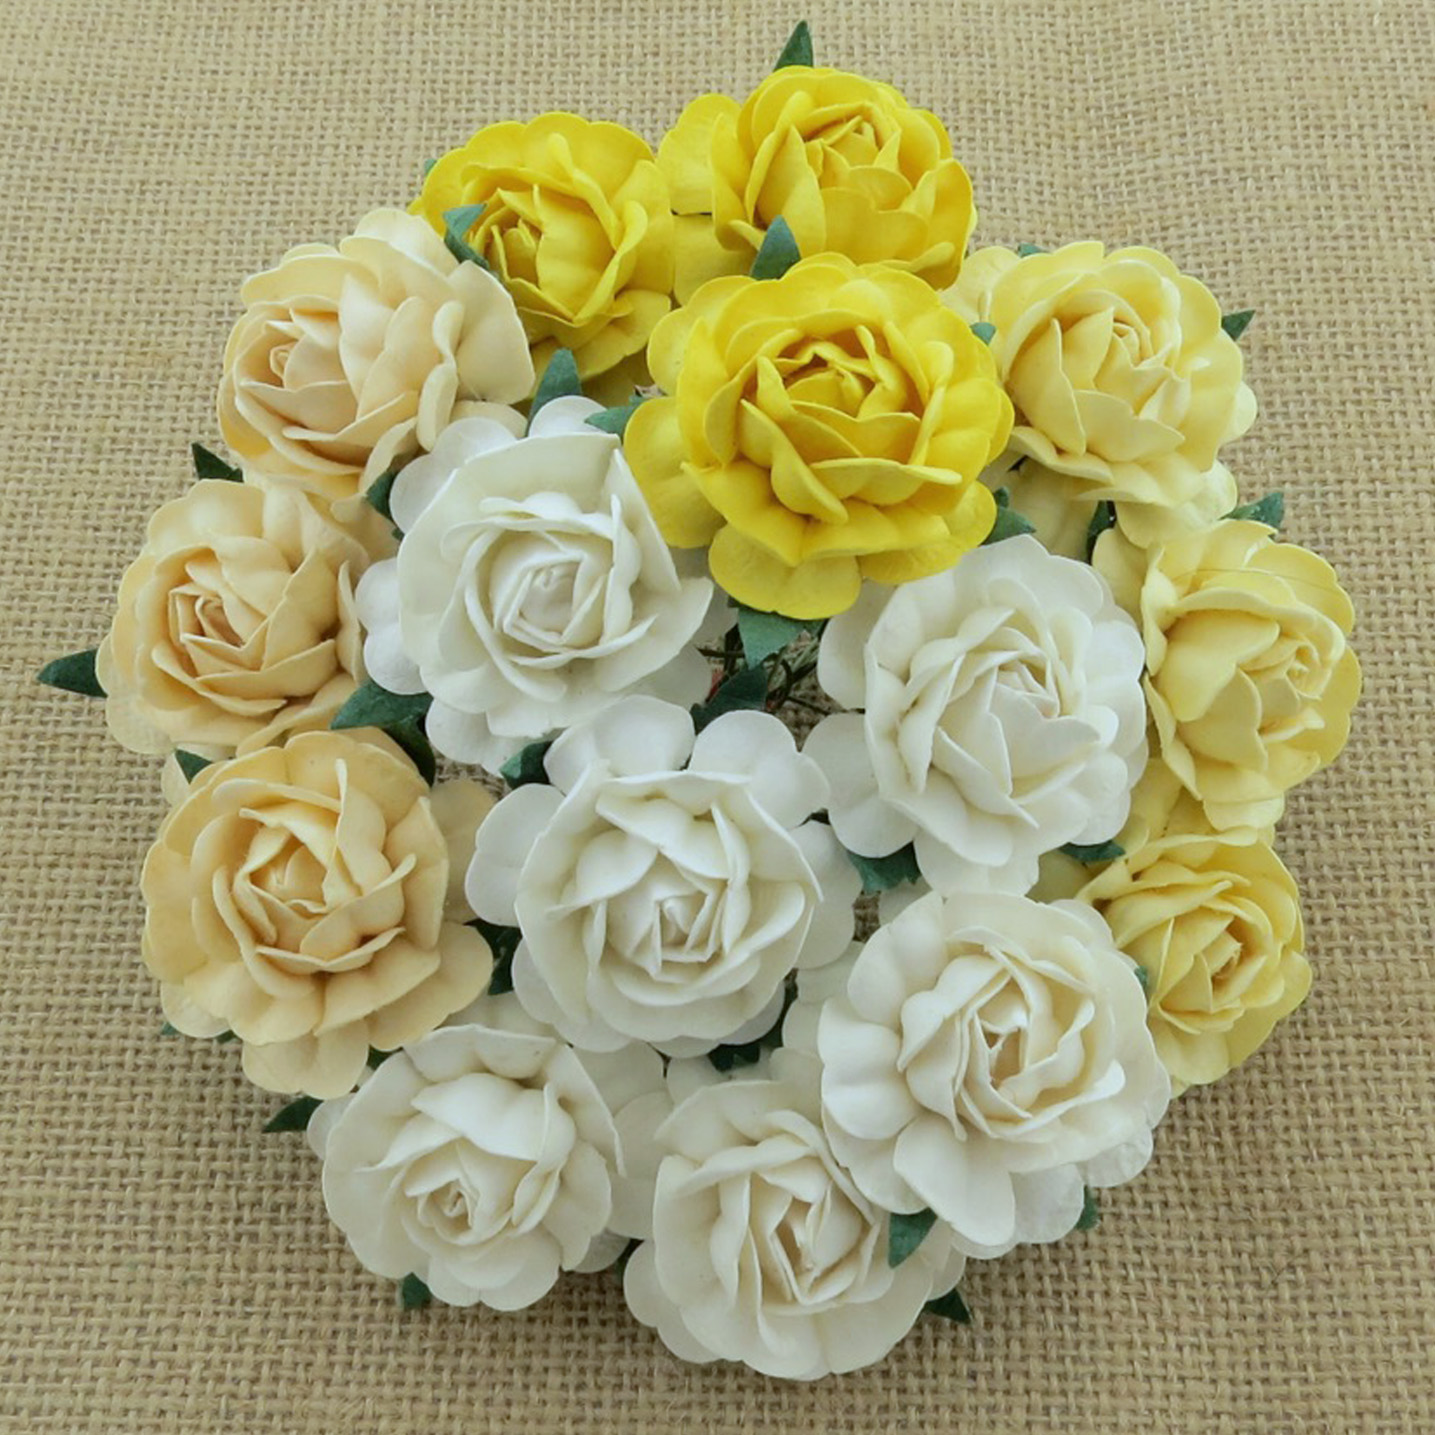 50 MIXED WHITE/CREAM MULBERRY PAPER TEA ROSES 40mm - 5 COLOR